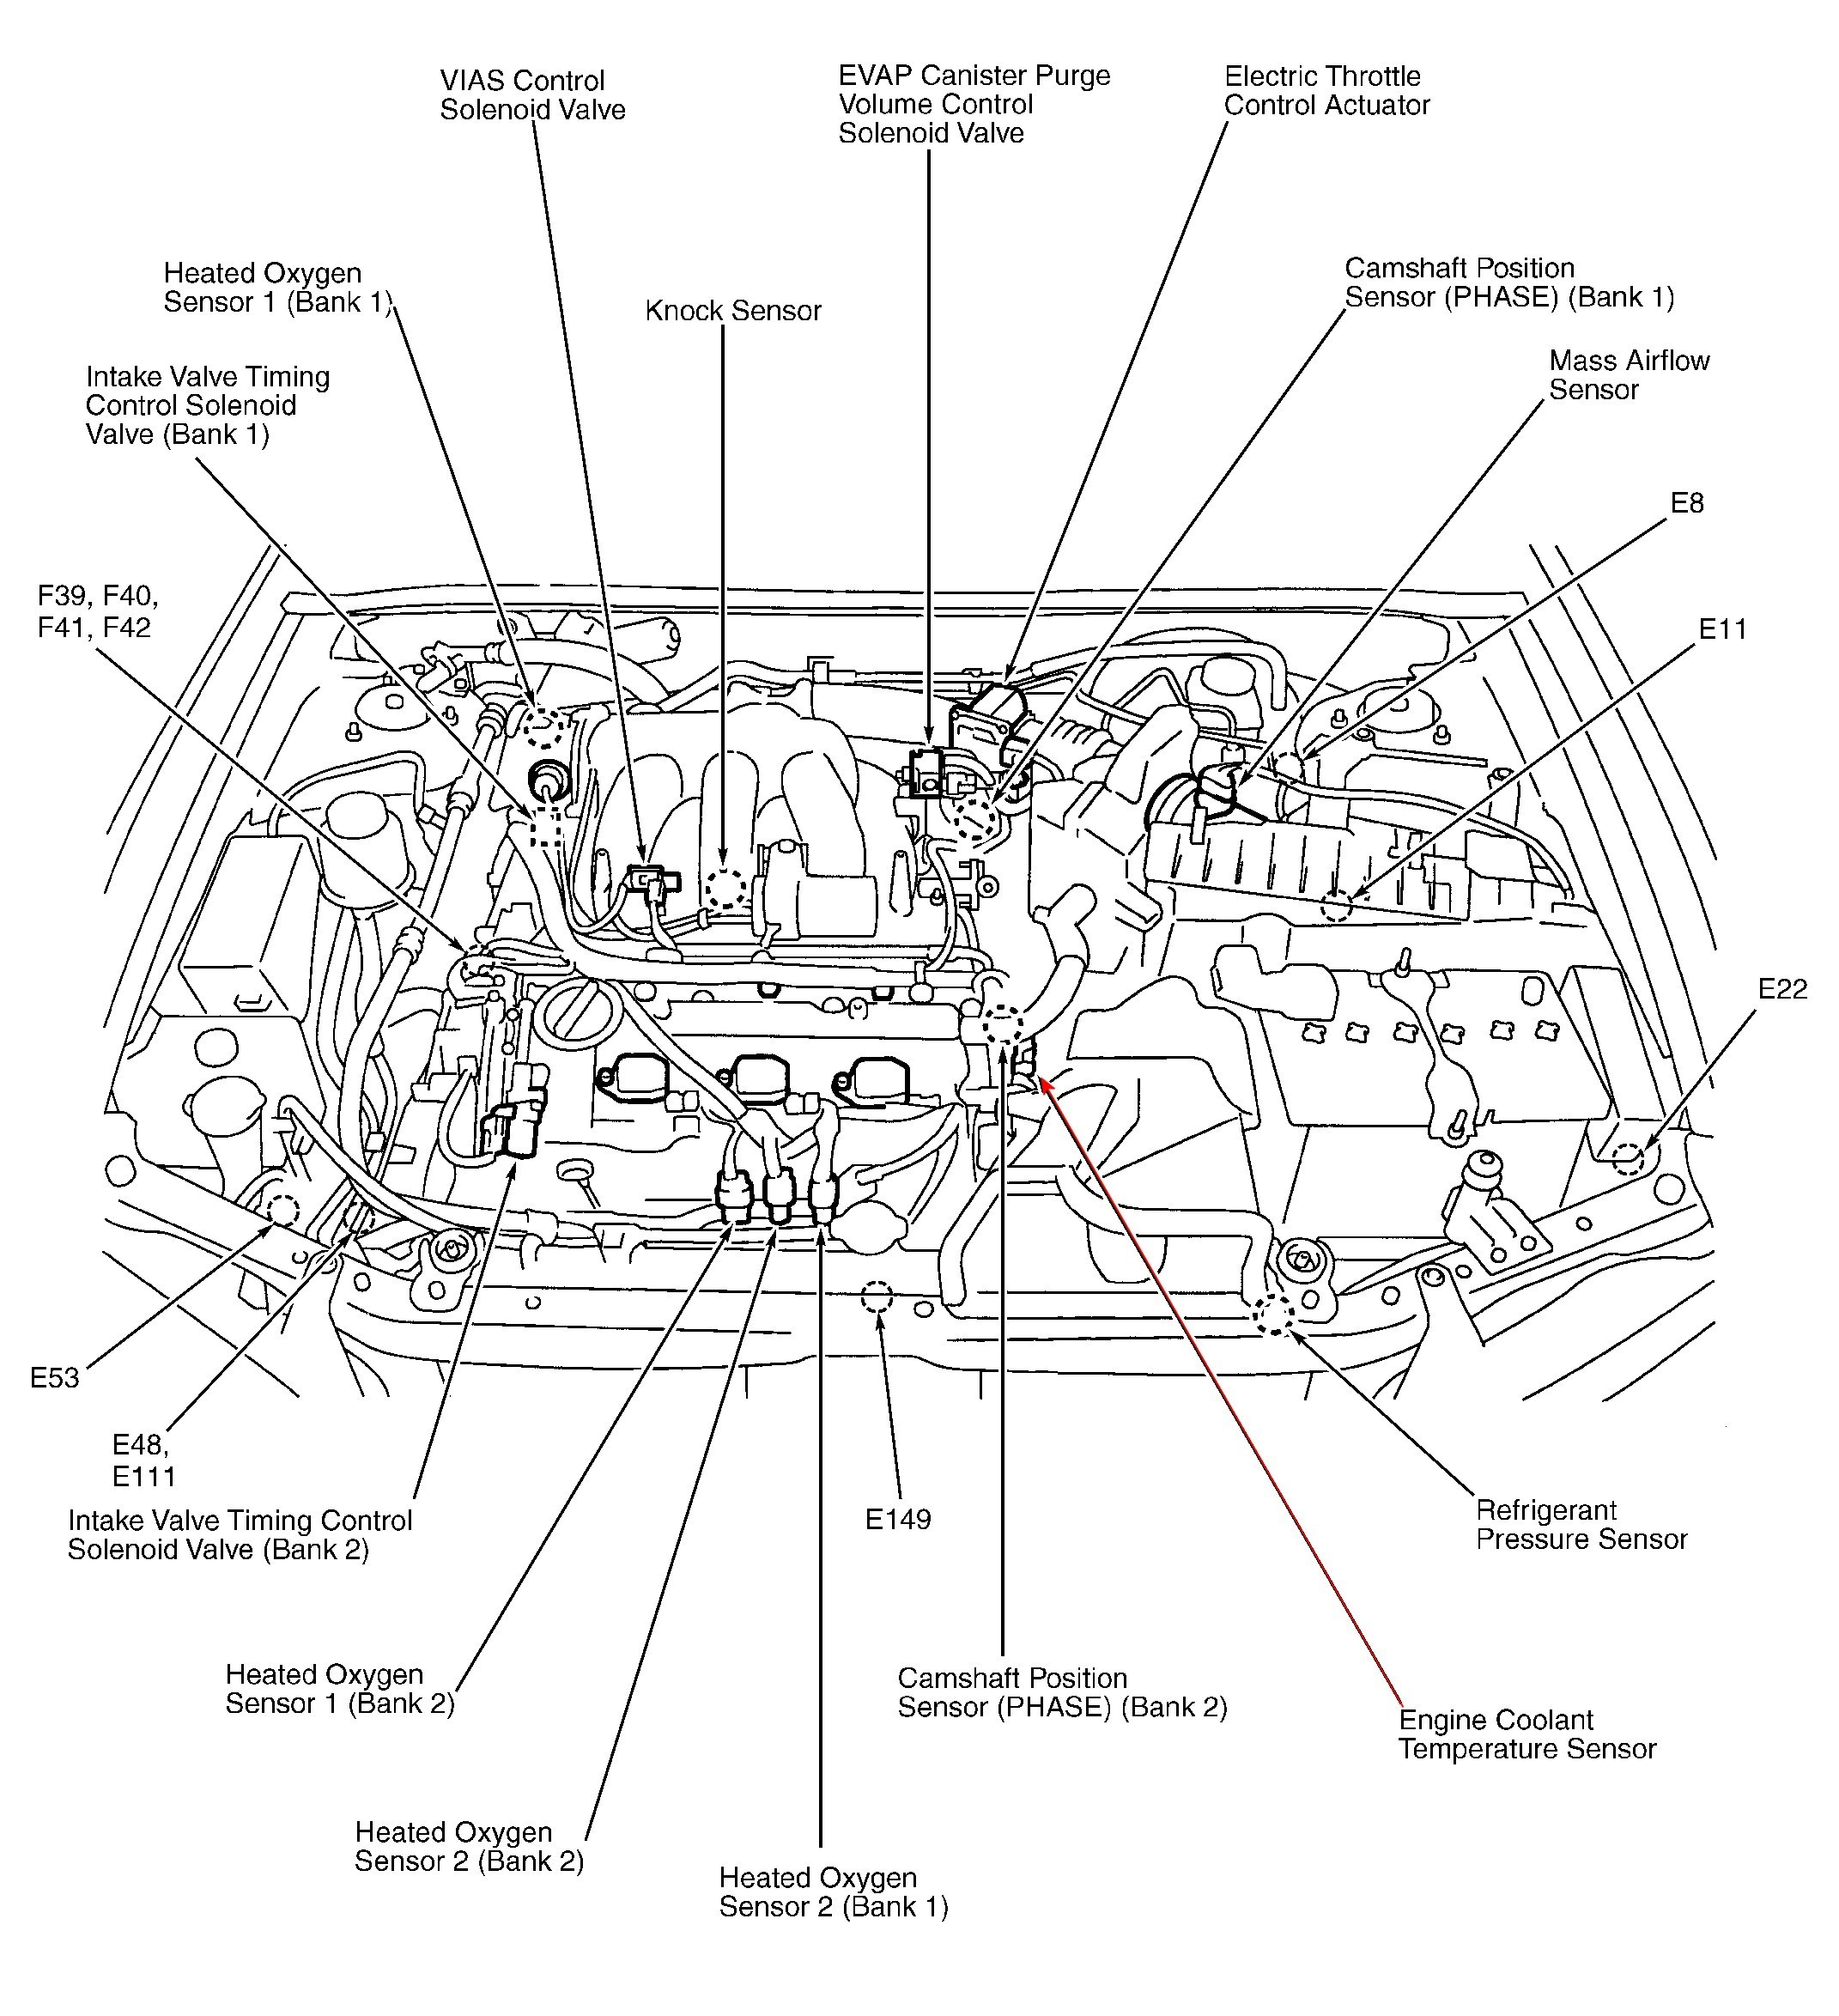 2014 ram wiring diagram box under the car hood diagram my wiring diagram 2014 ram wiring schematics